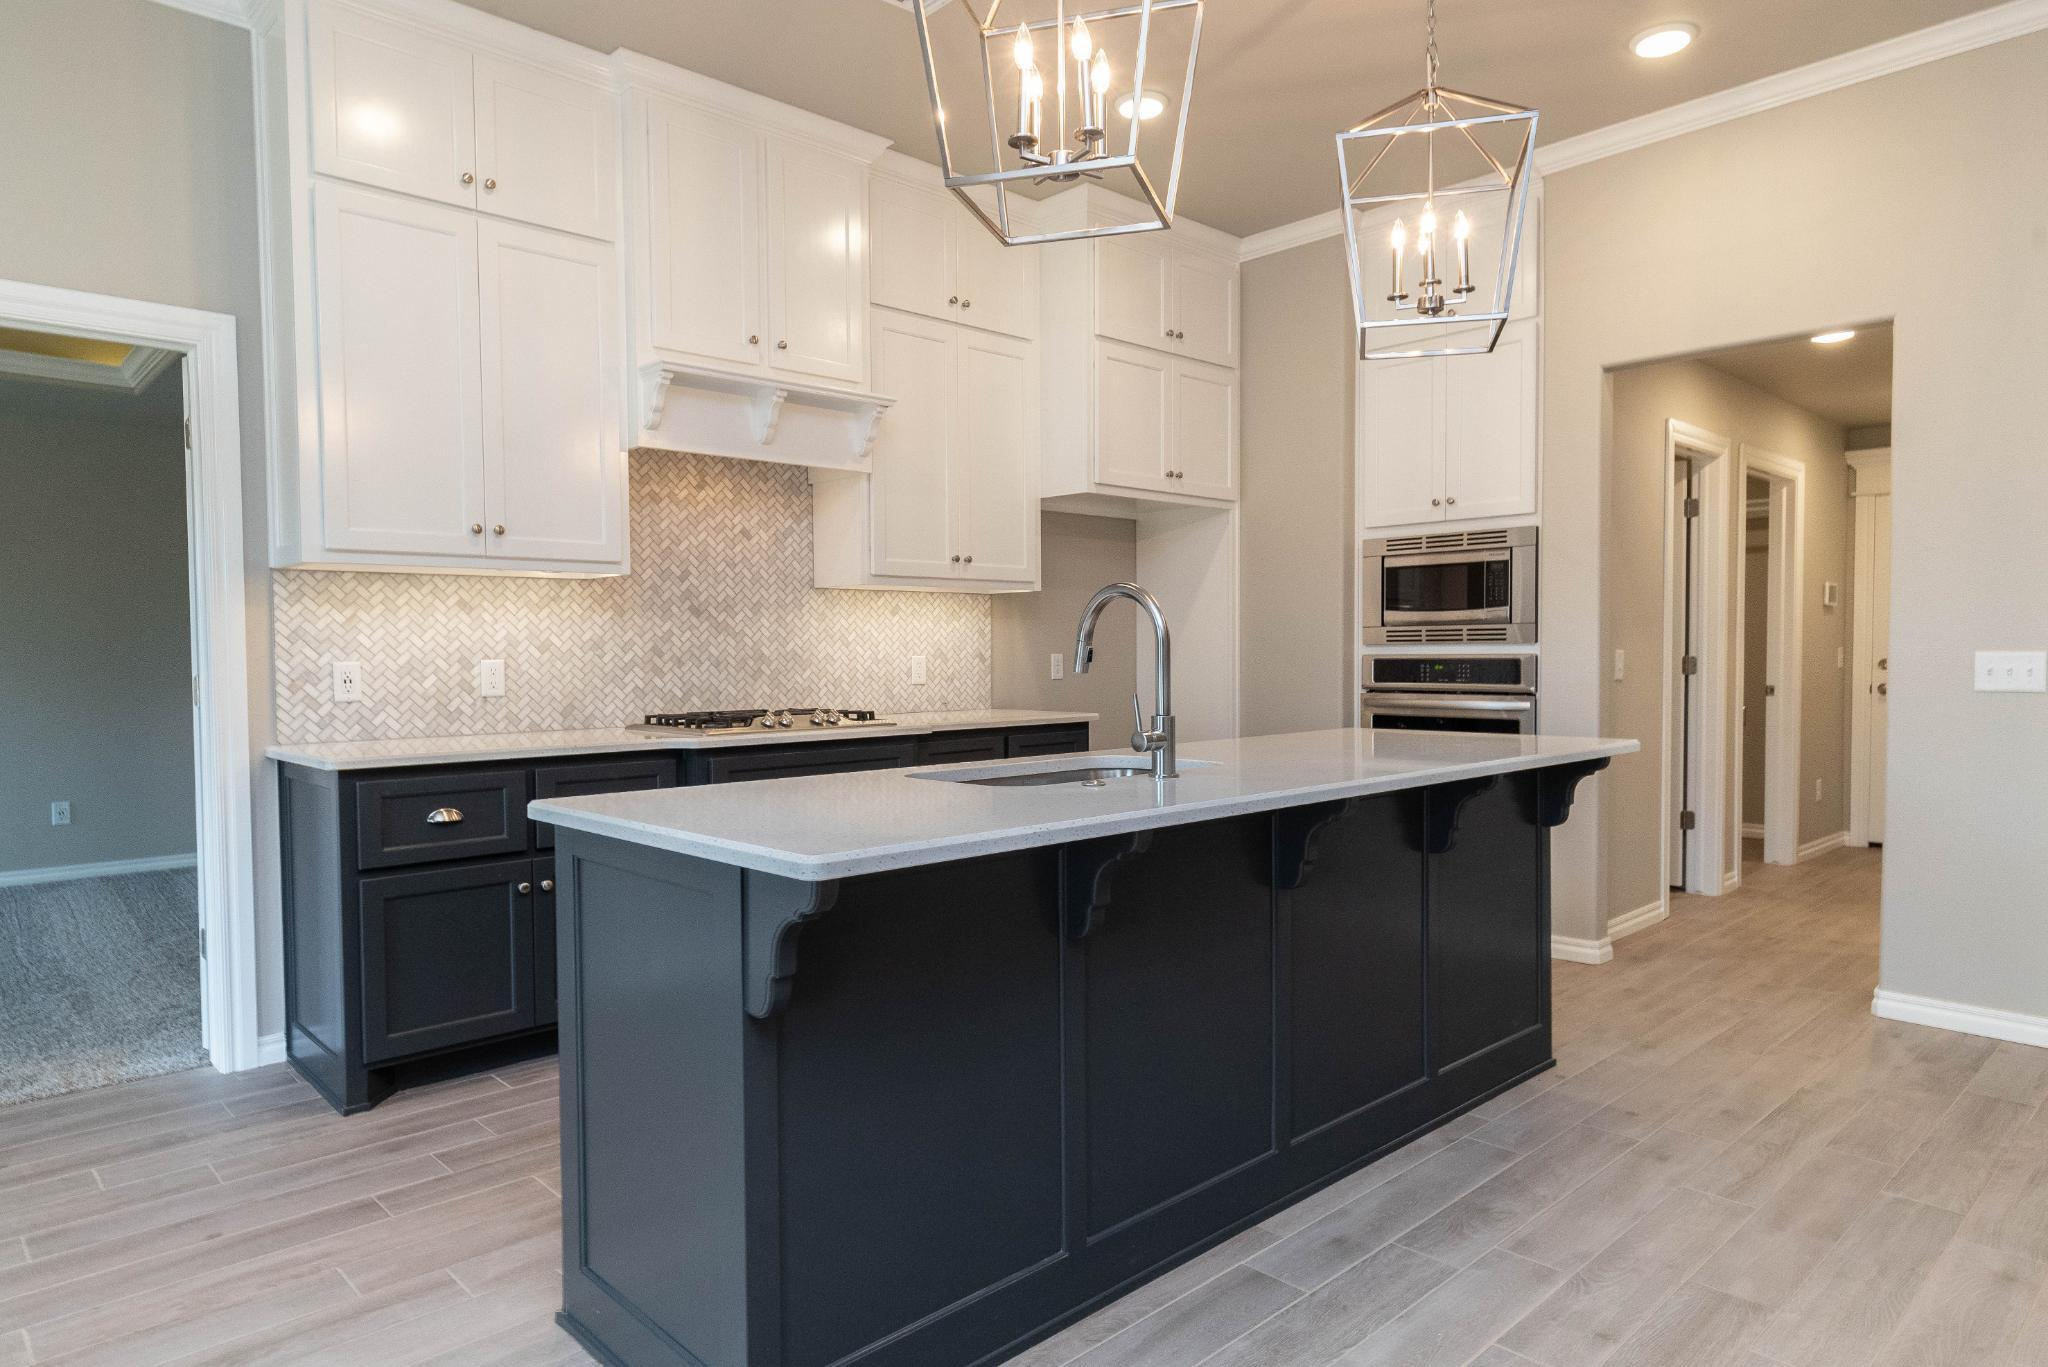 Kitchen featured in the Blue Spruce Half Bath PLUS By Homes By Taber in Oklahoma City, OK